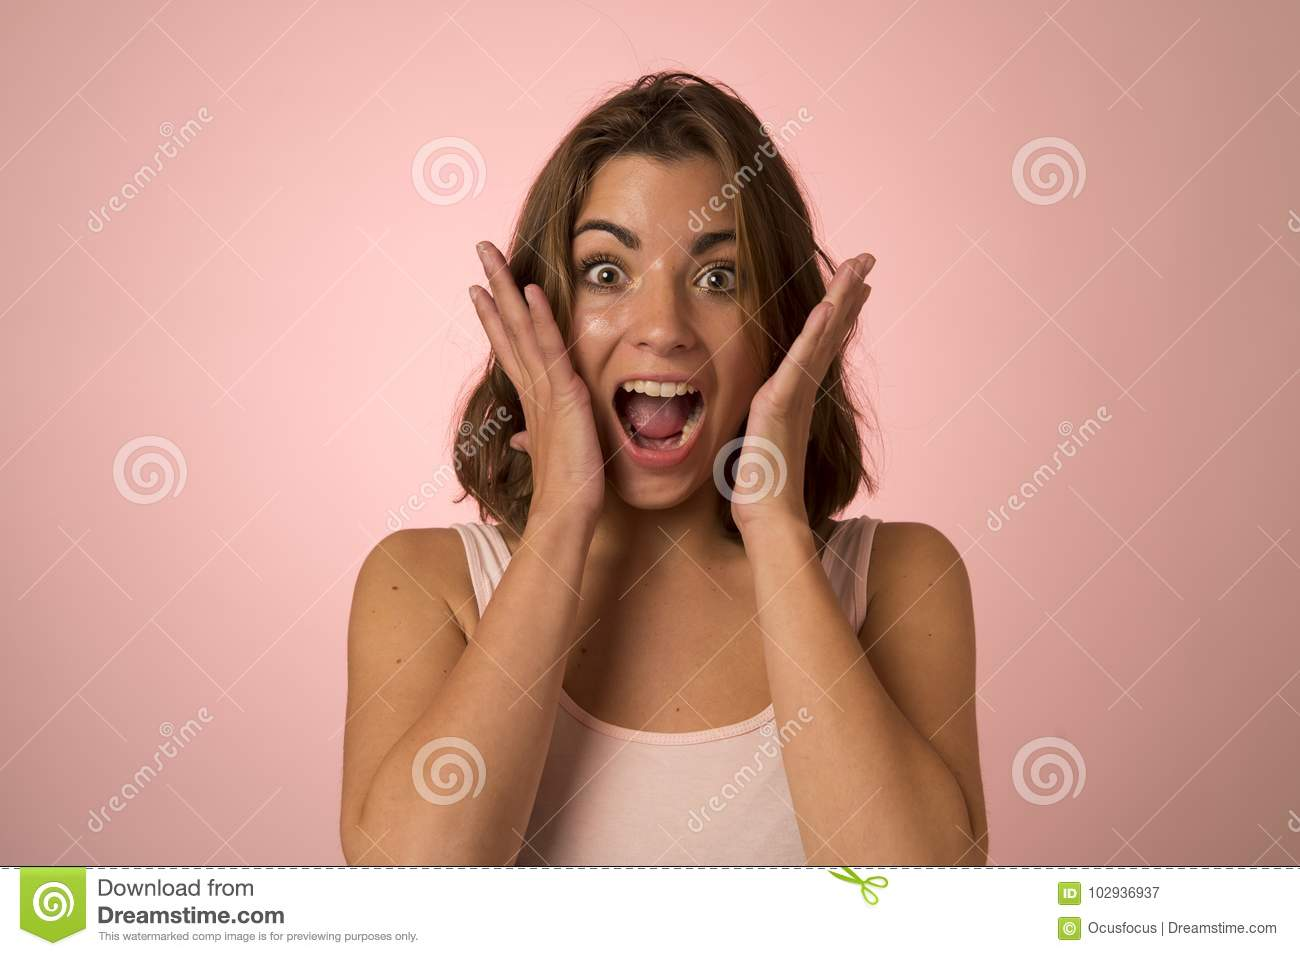 Young attractive and beautiful woman smiling excited and happy in nice shock and surprise showing positive face